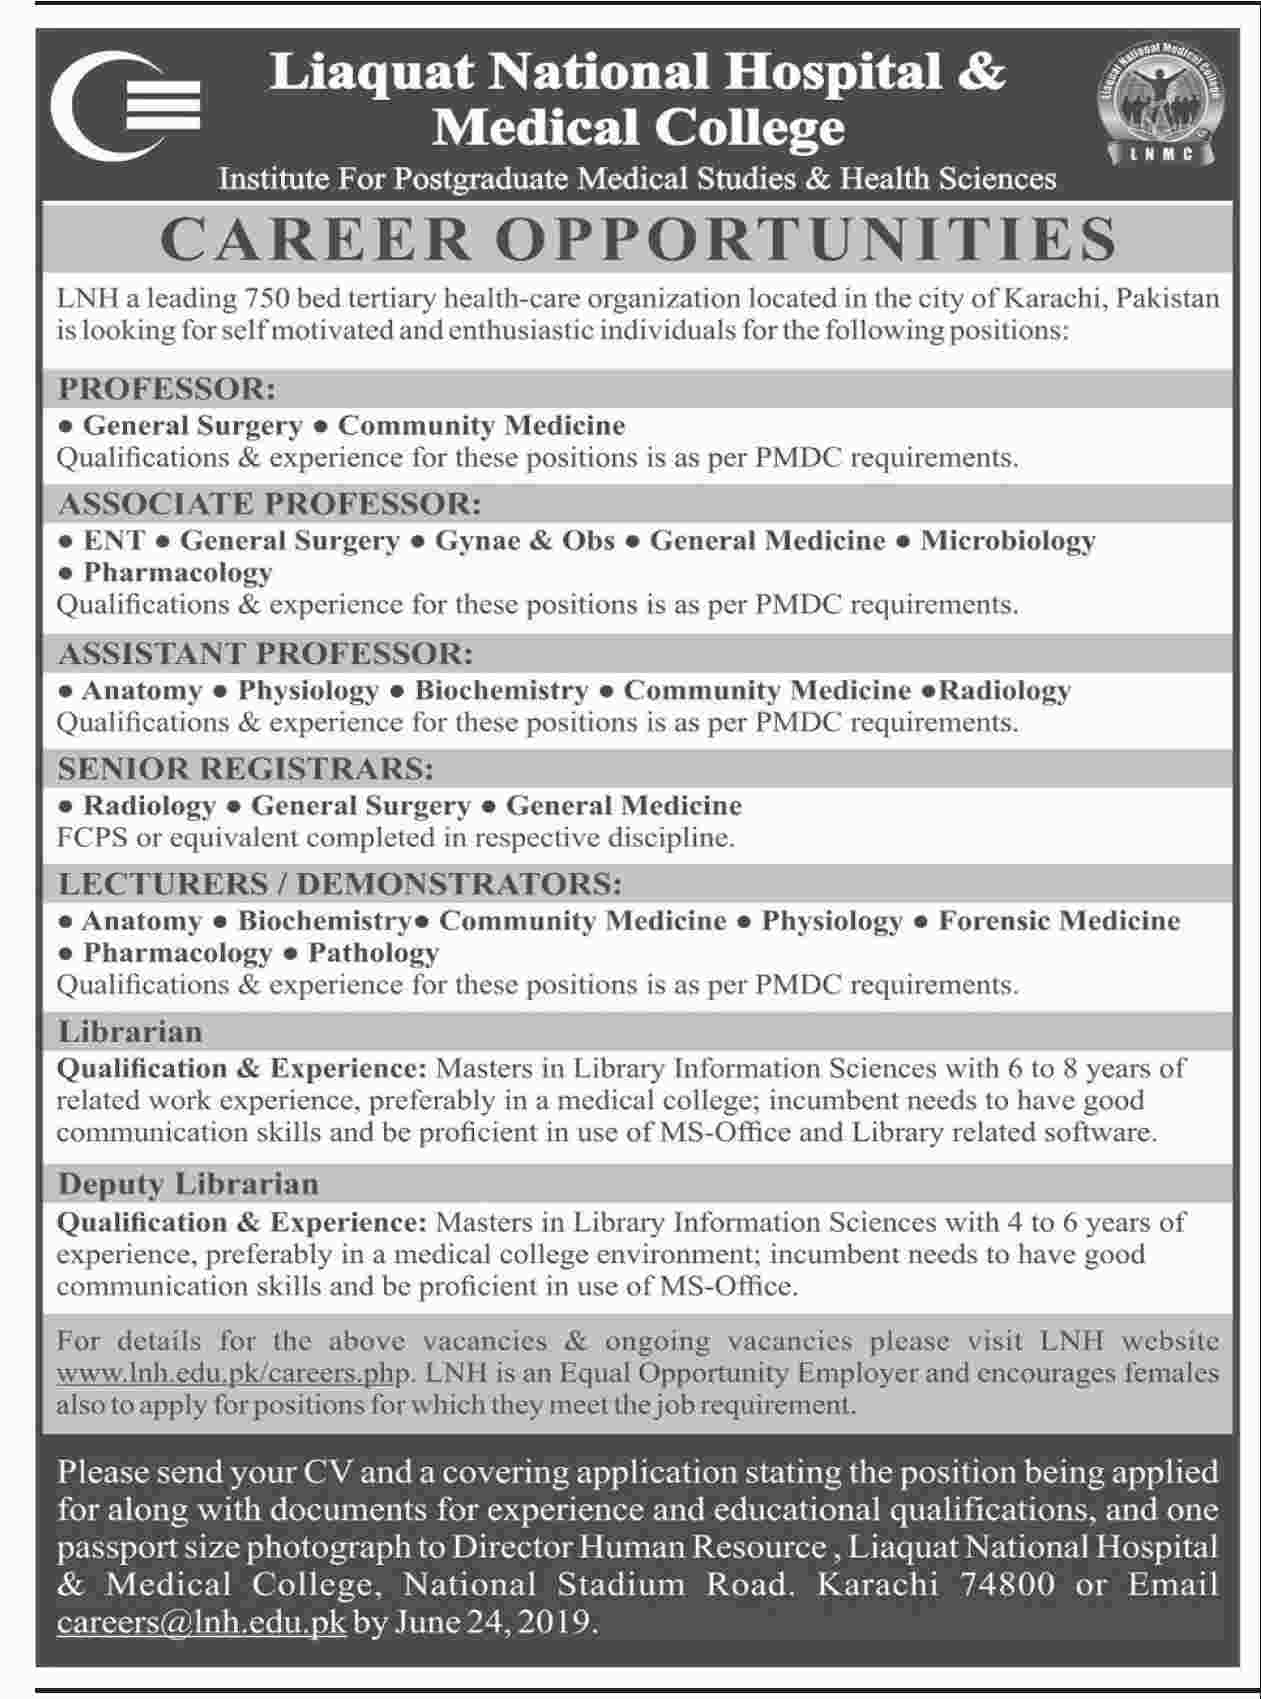 Jobs In Liaquat National Hospital & Medical College 2019